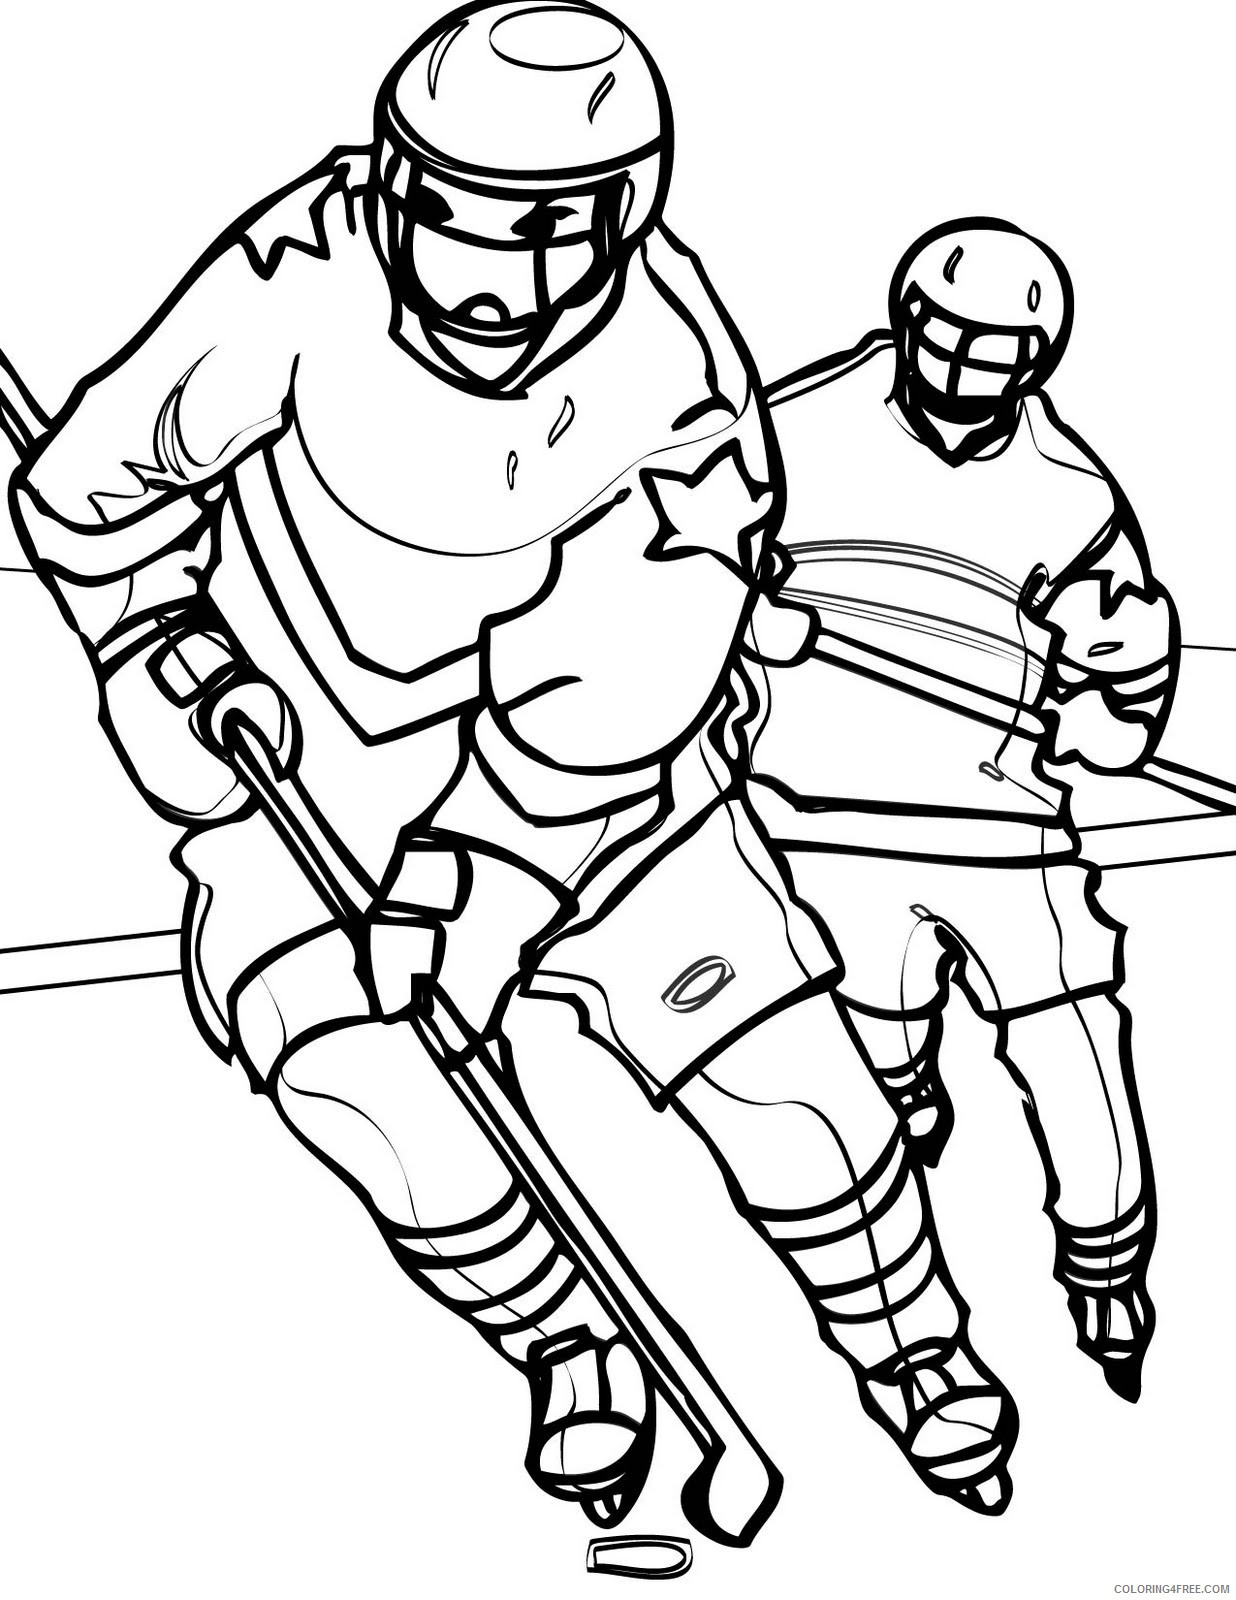 hockey coloring pages nhl Coloring4free